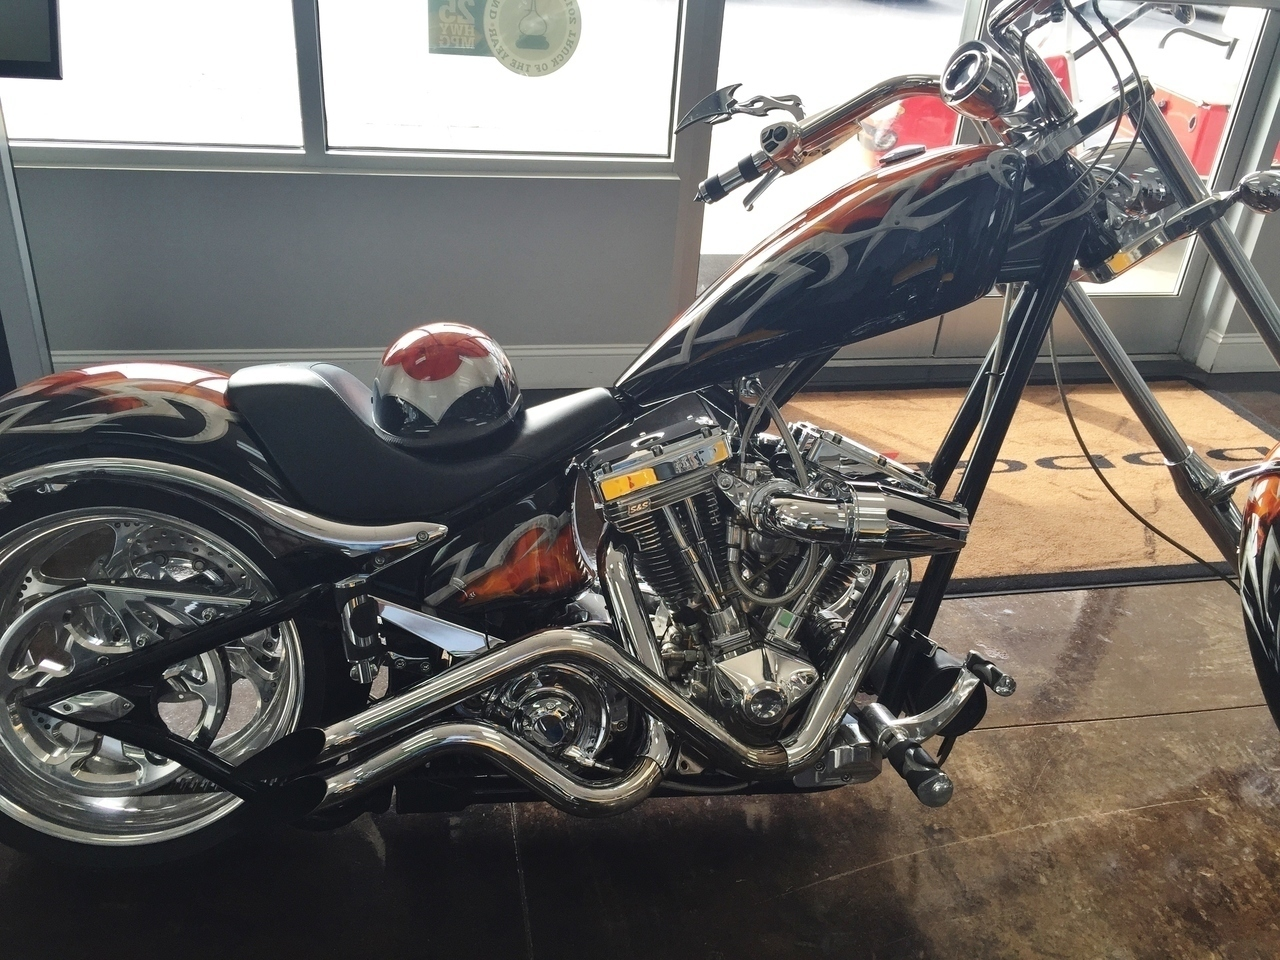 See more photos for this Big Dog Motorcycles K9 , 2008 motorcycle listing